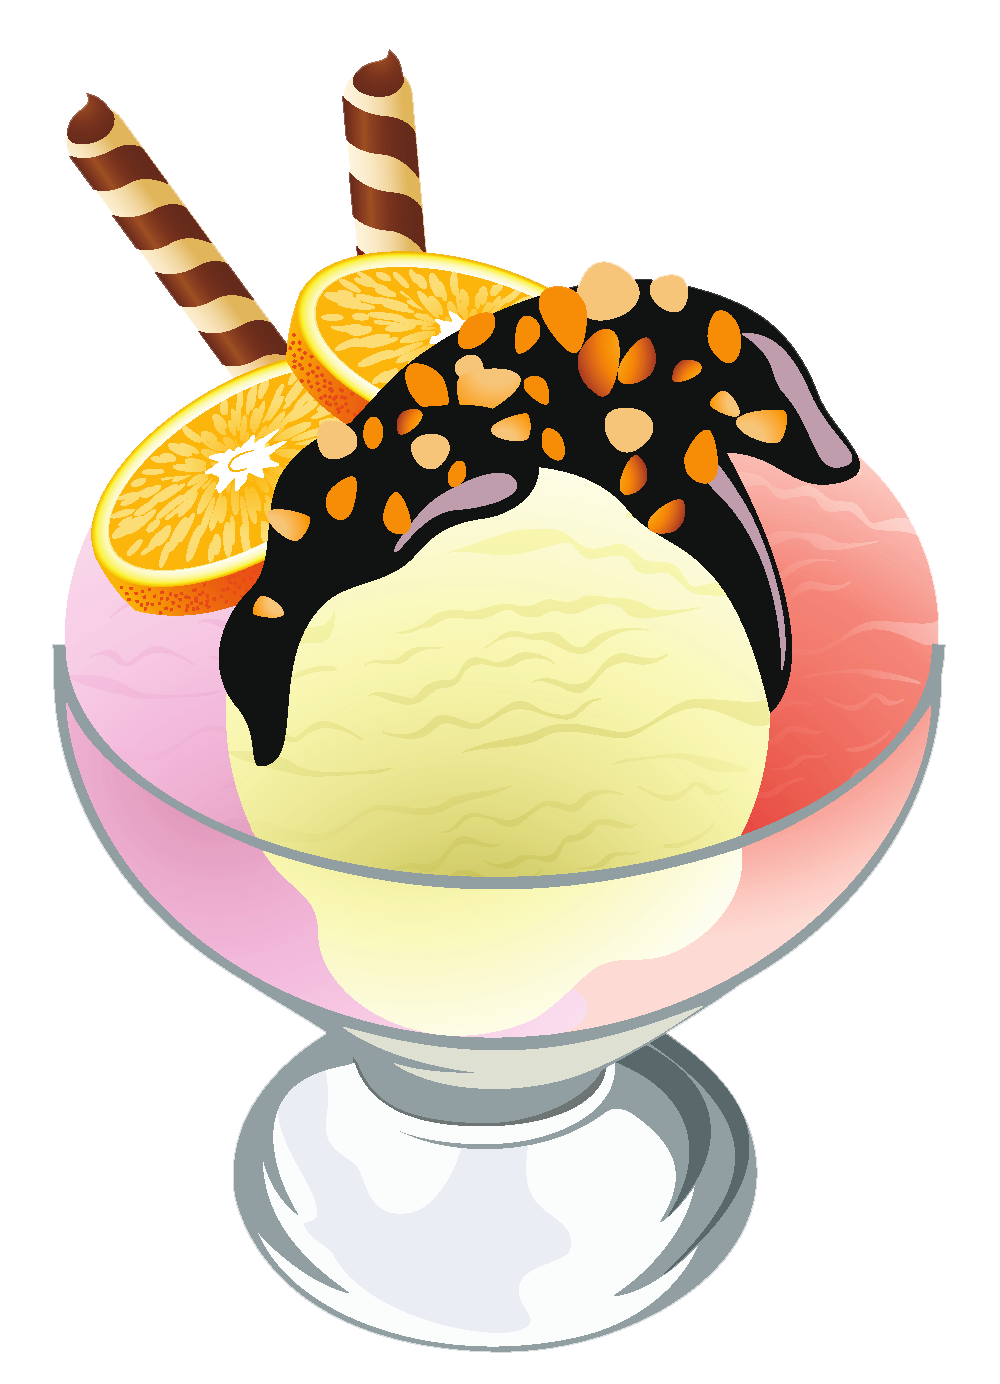 Ice cream sundae transparent. Clipart coffee toast